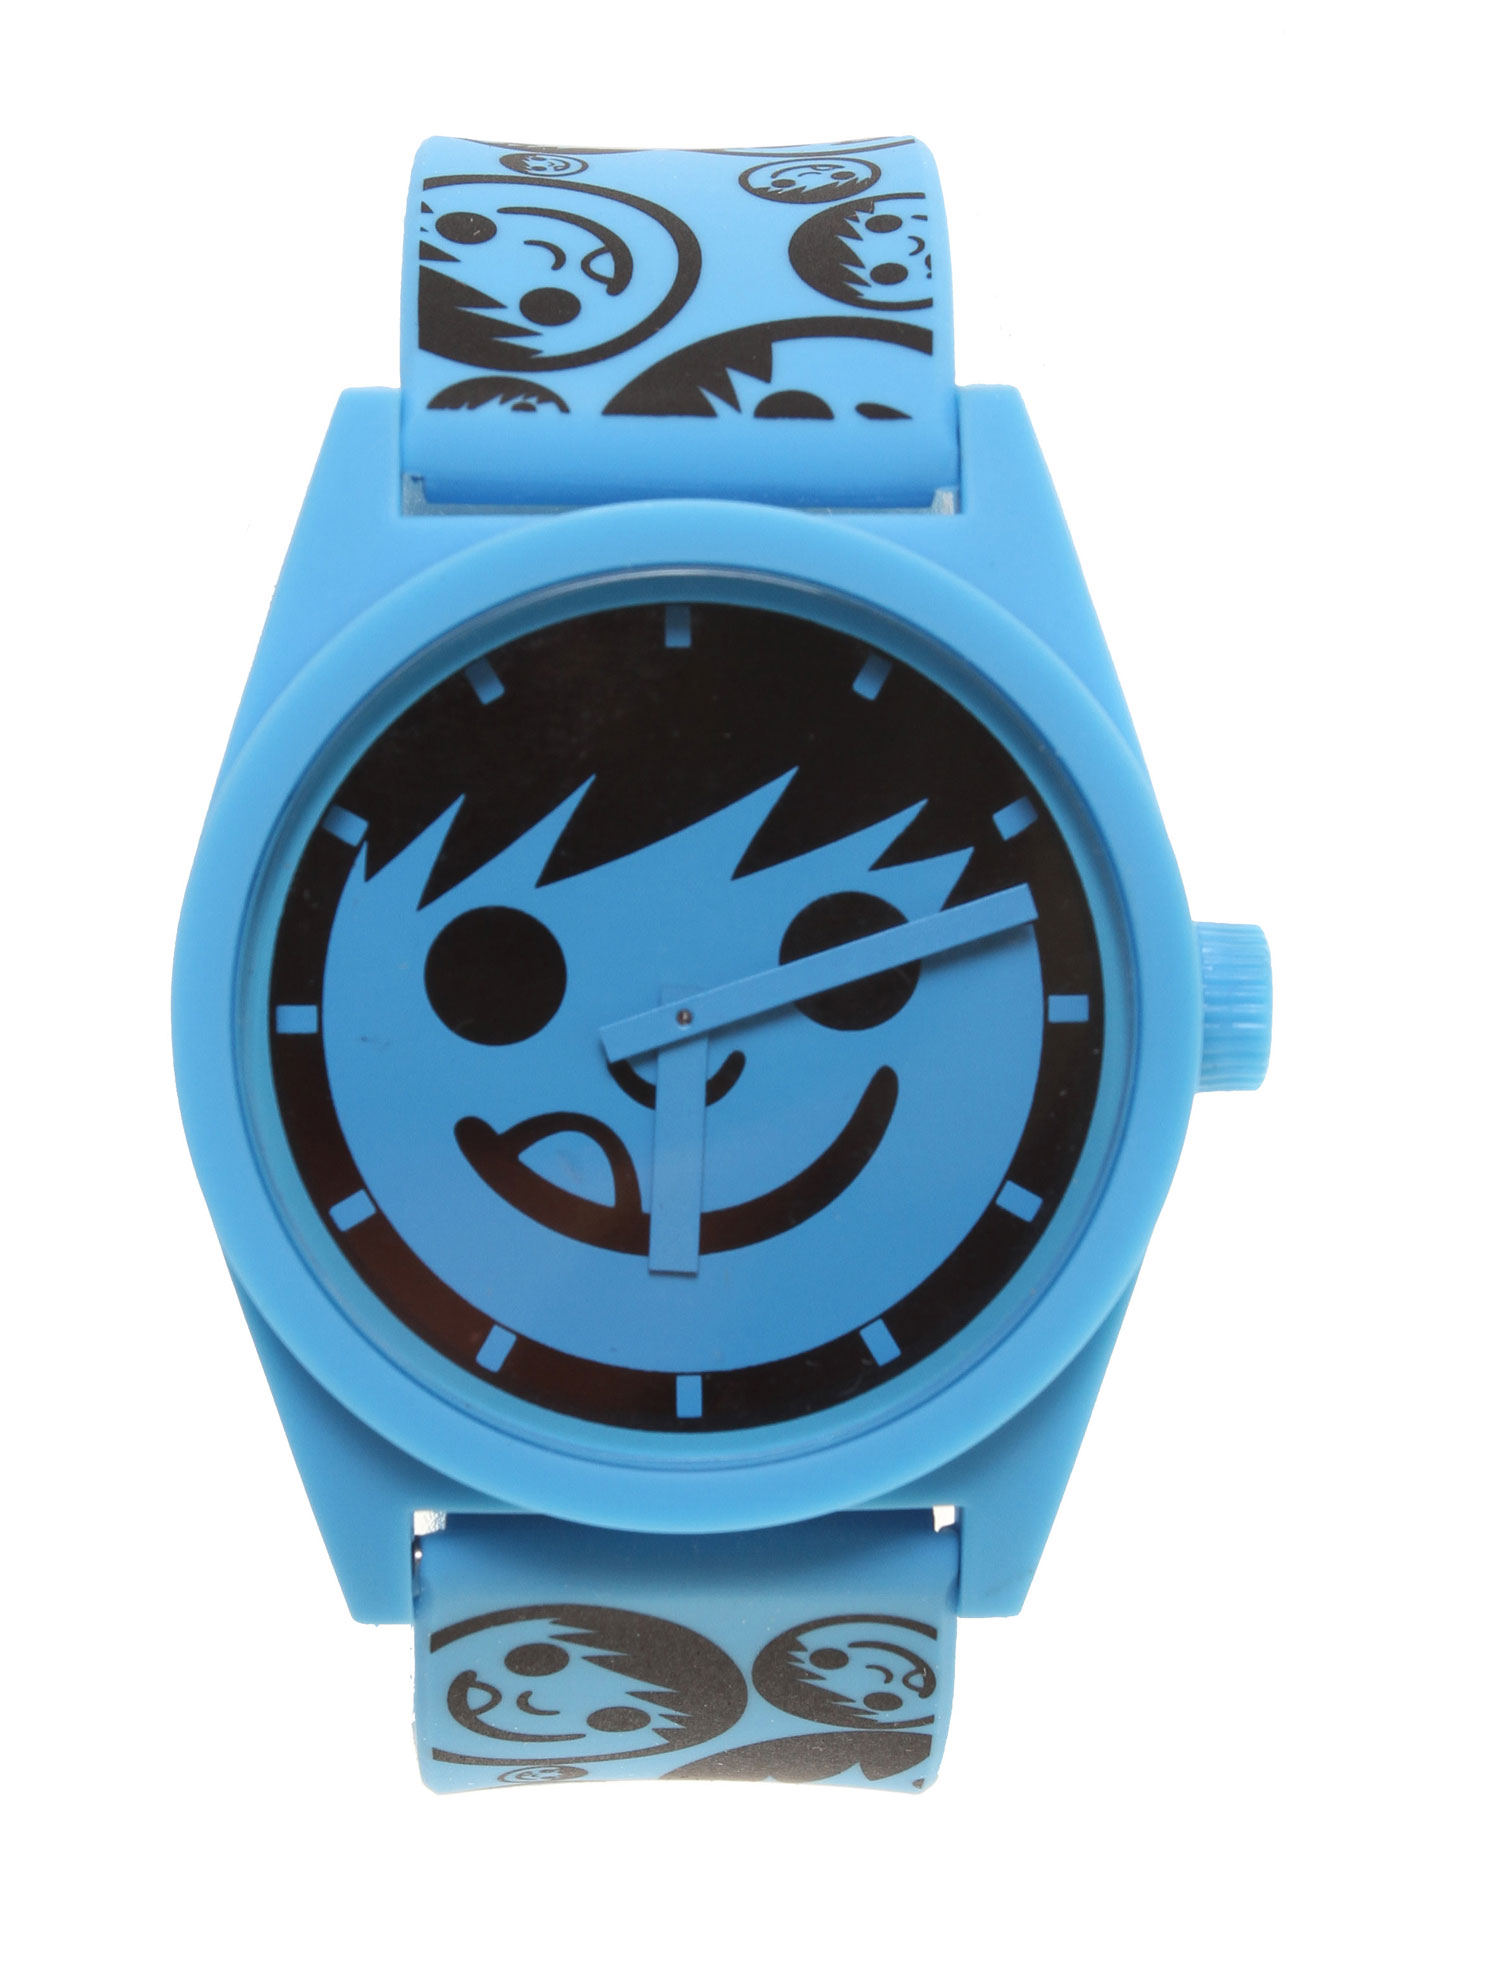 Skateboard Neff Daily Sucker Watch Cyan S-Band - $20.95